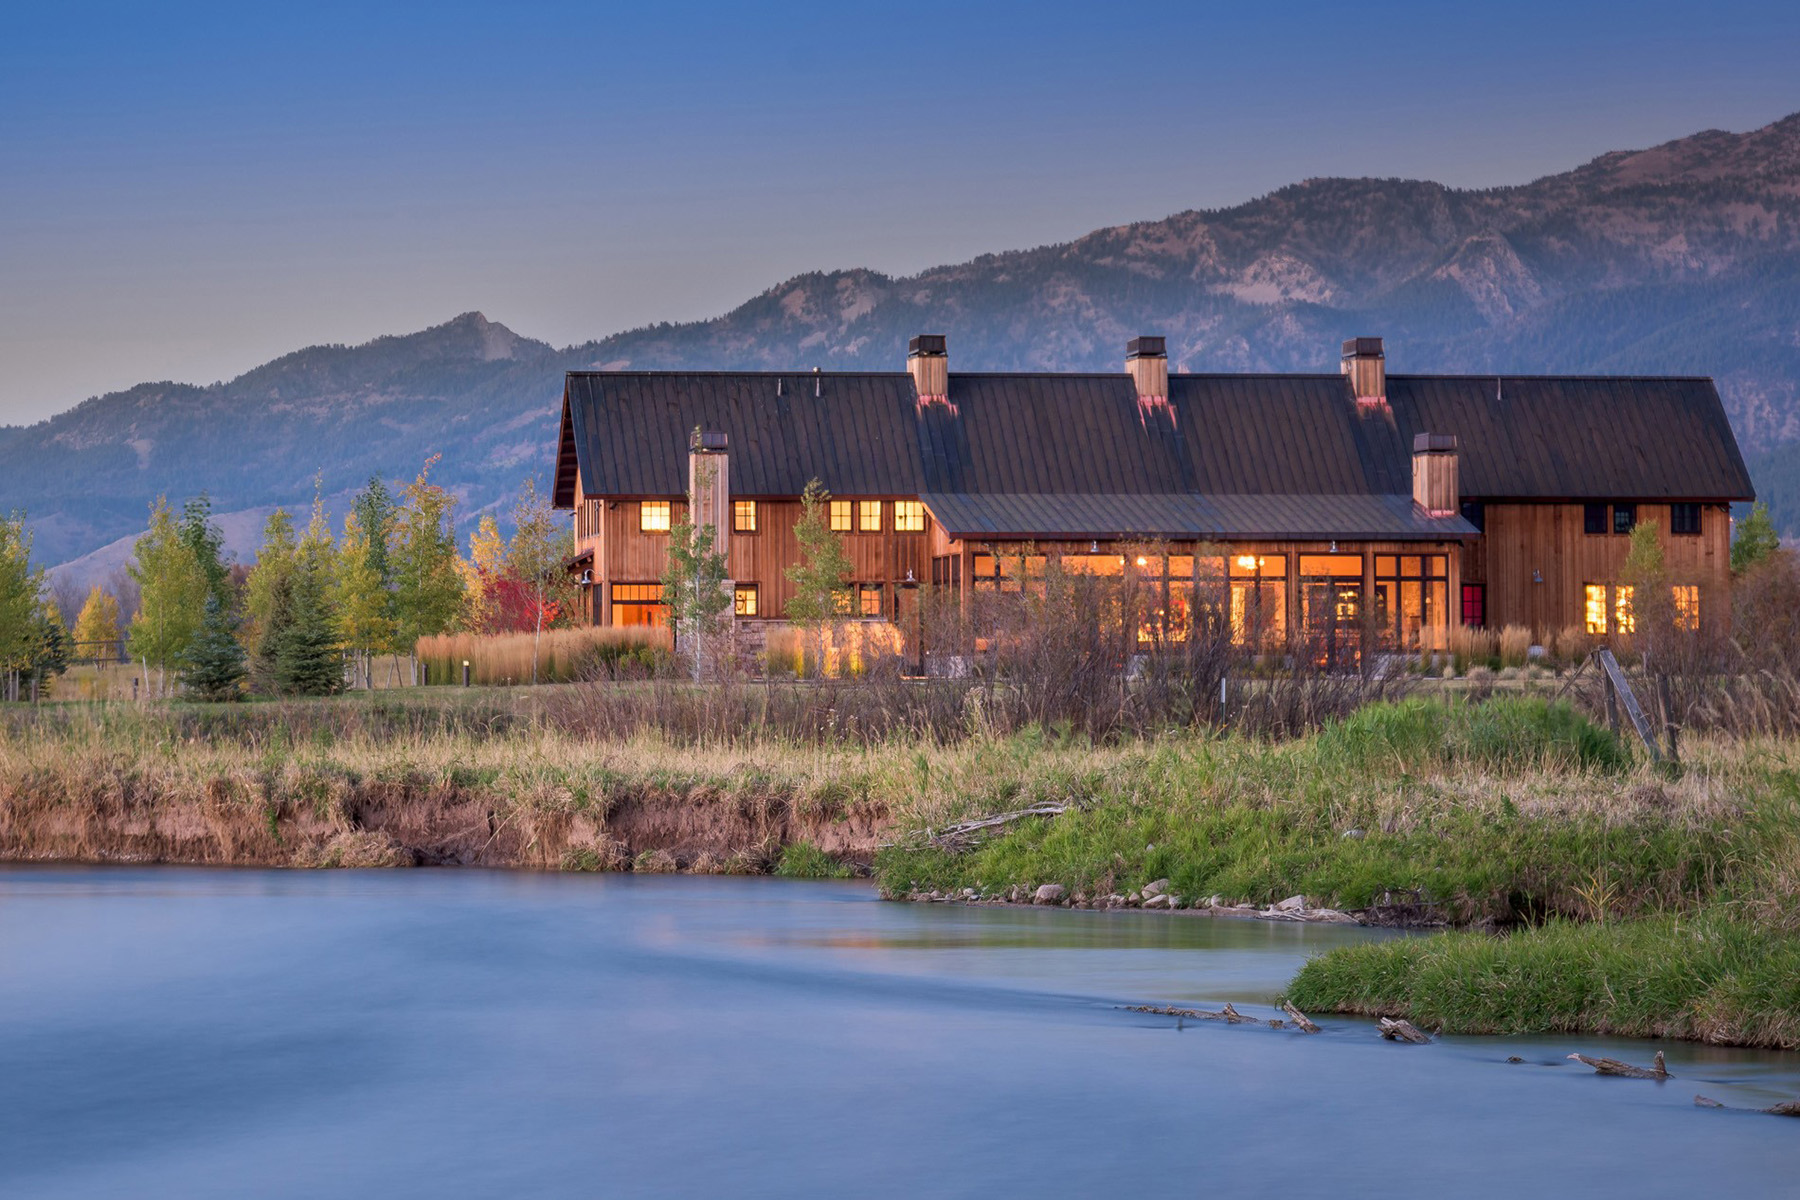 独户住宅 为 销售 在 The Cakebread Ranch 640 Clearwater Lane 塞尼, 怀俄明州, 83127 Jackson Hole, 美国